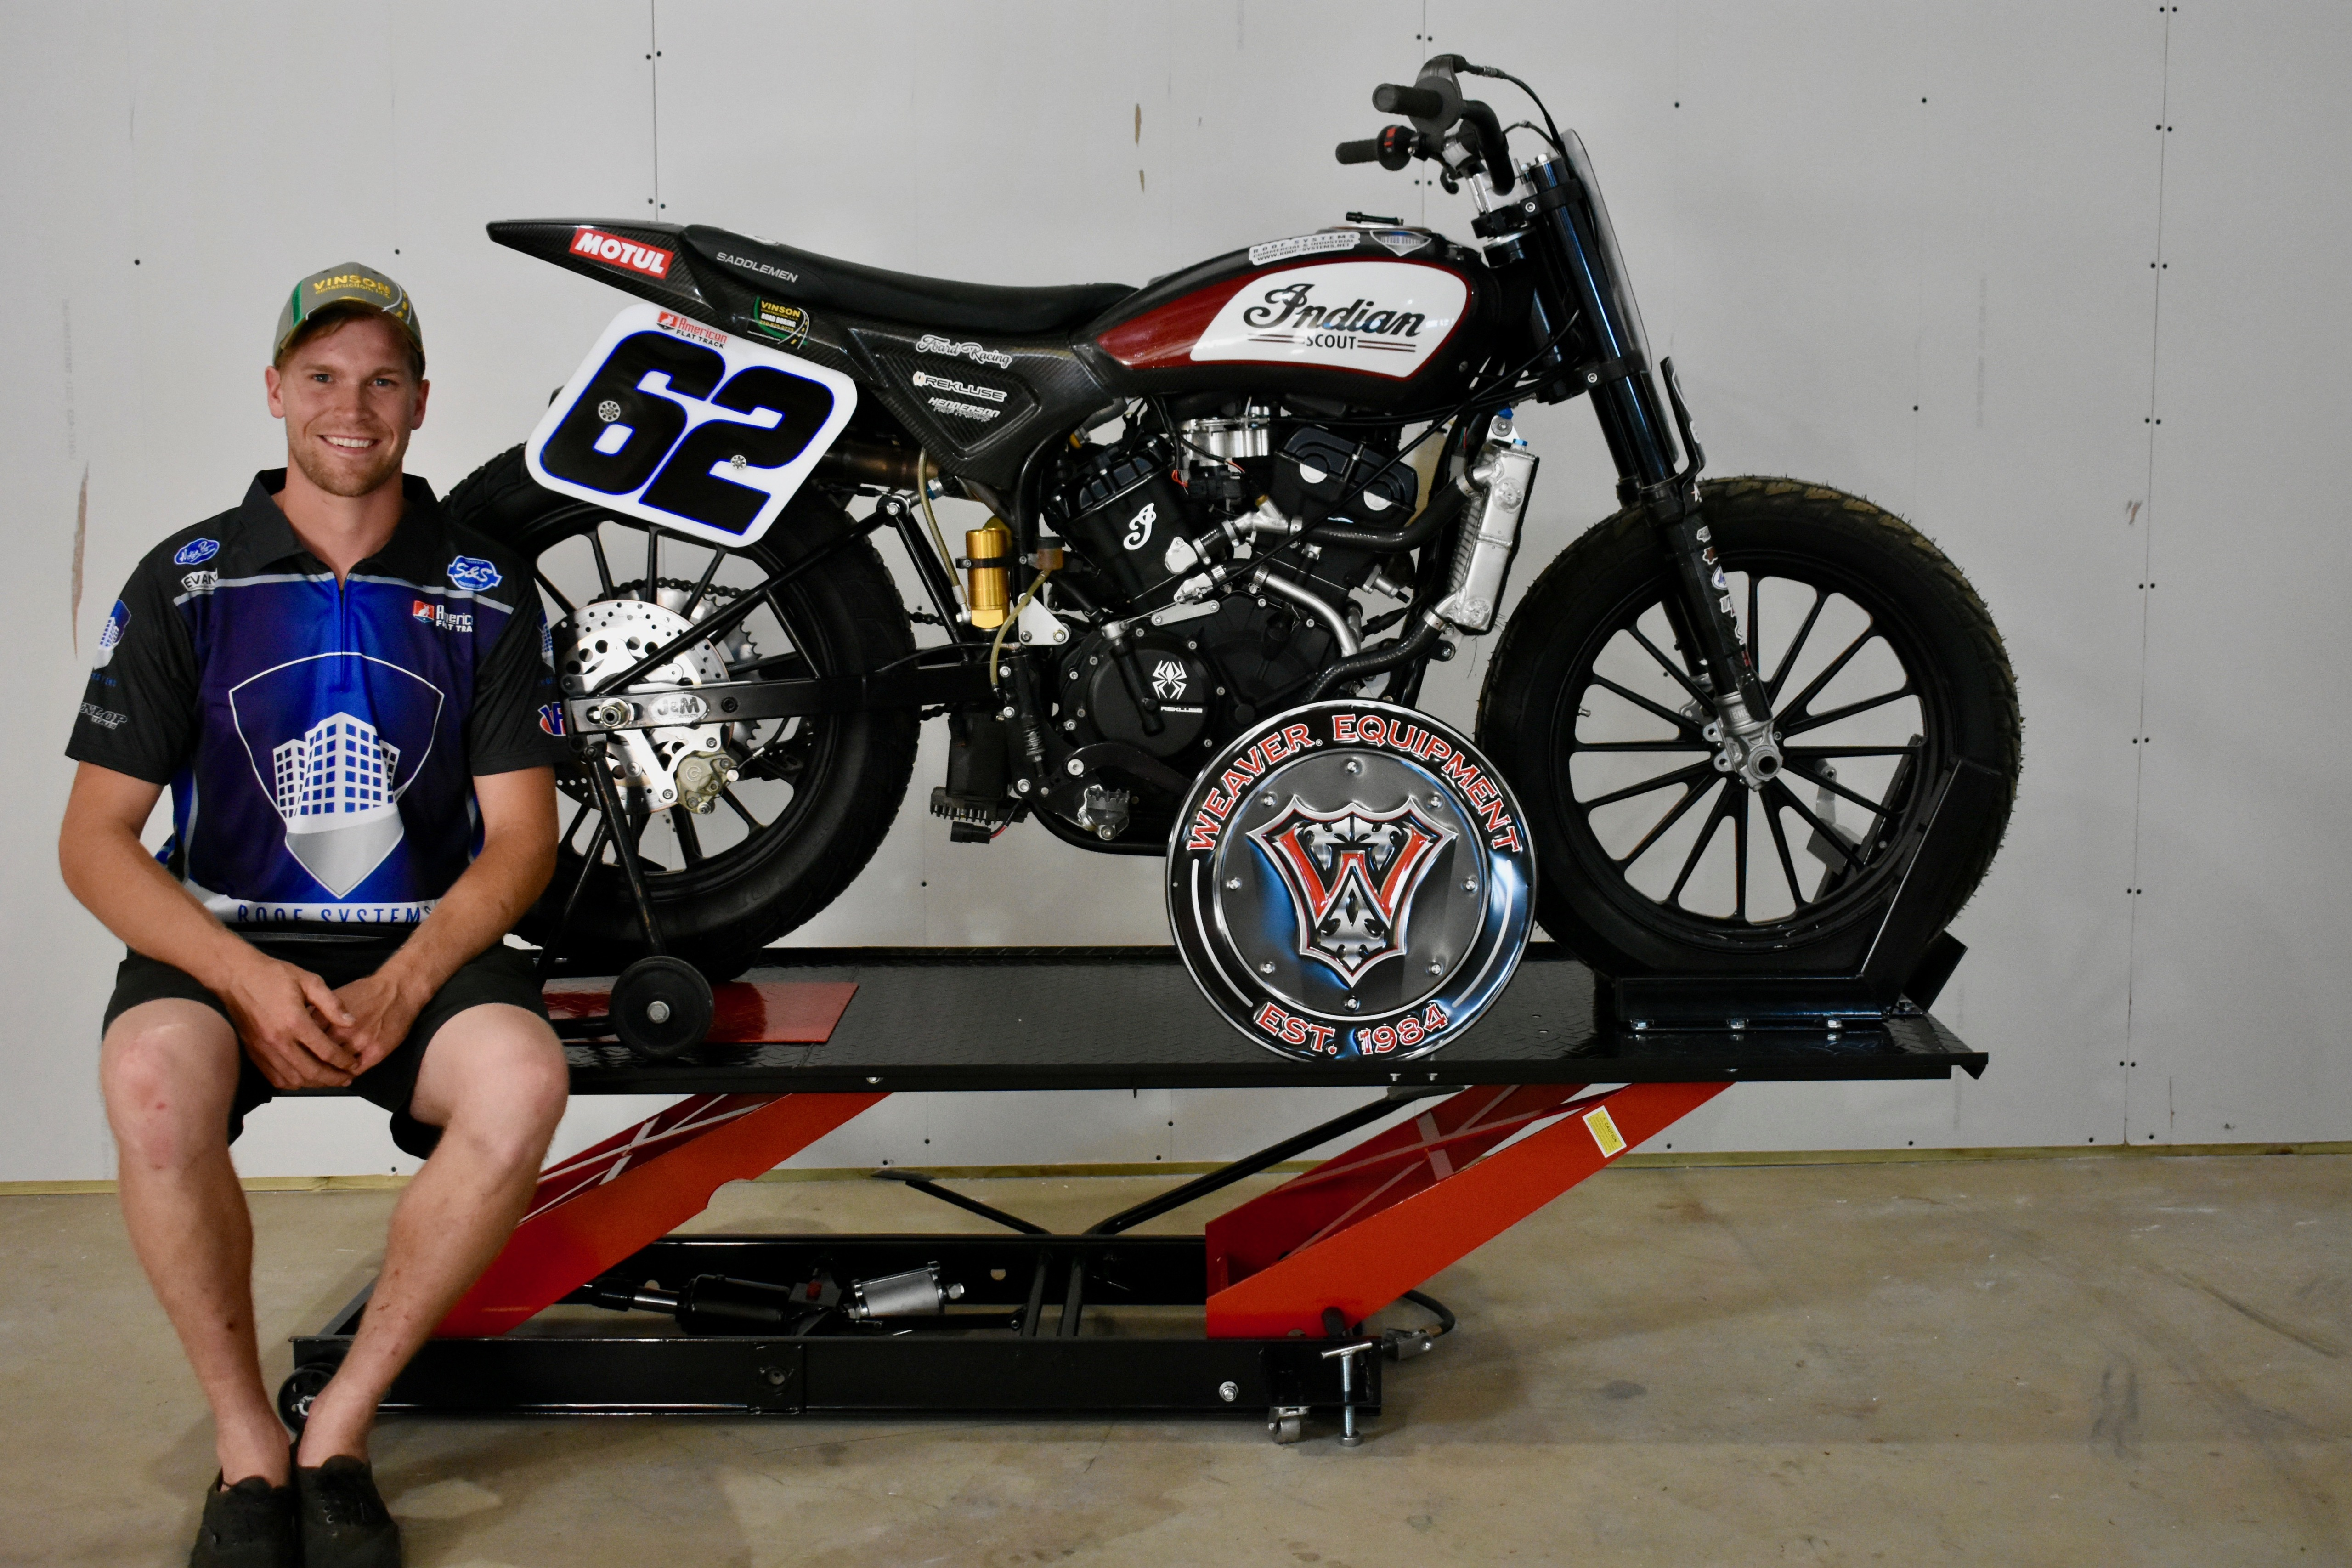 """Third-generation racer Dan Bromley ranks as one of the most consistent performers in the American Flat Track paddock regardless of class. That consistency carried him to the 2018 AFT Singles championship and brought him to within ten points of successfully defending his crown in 2019."""